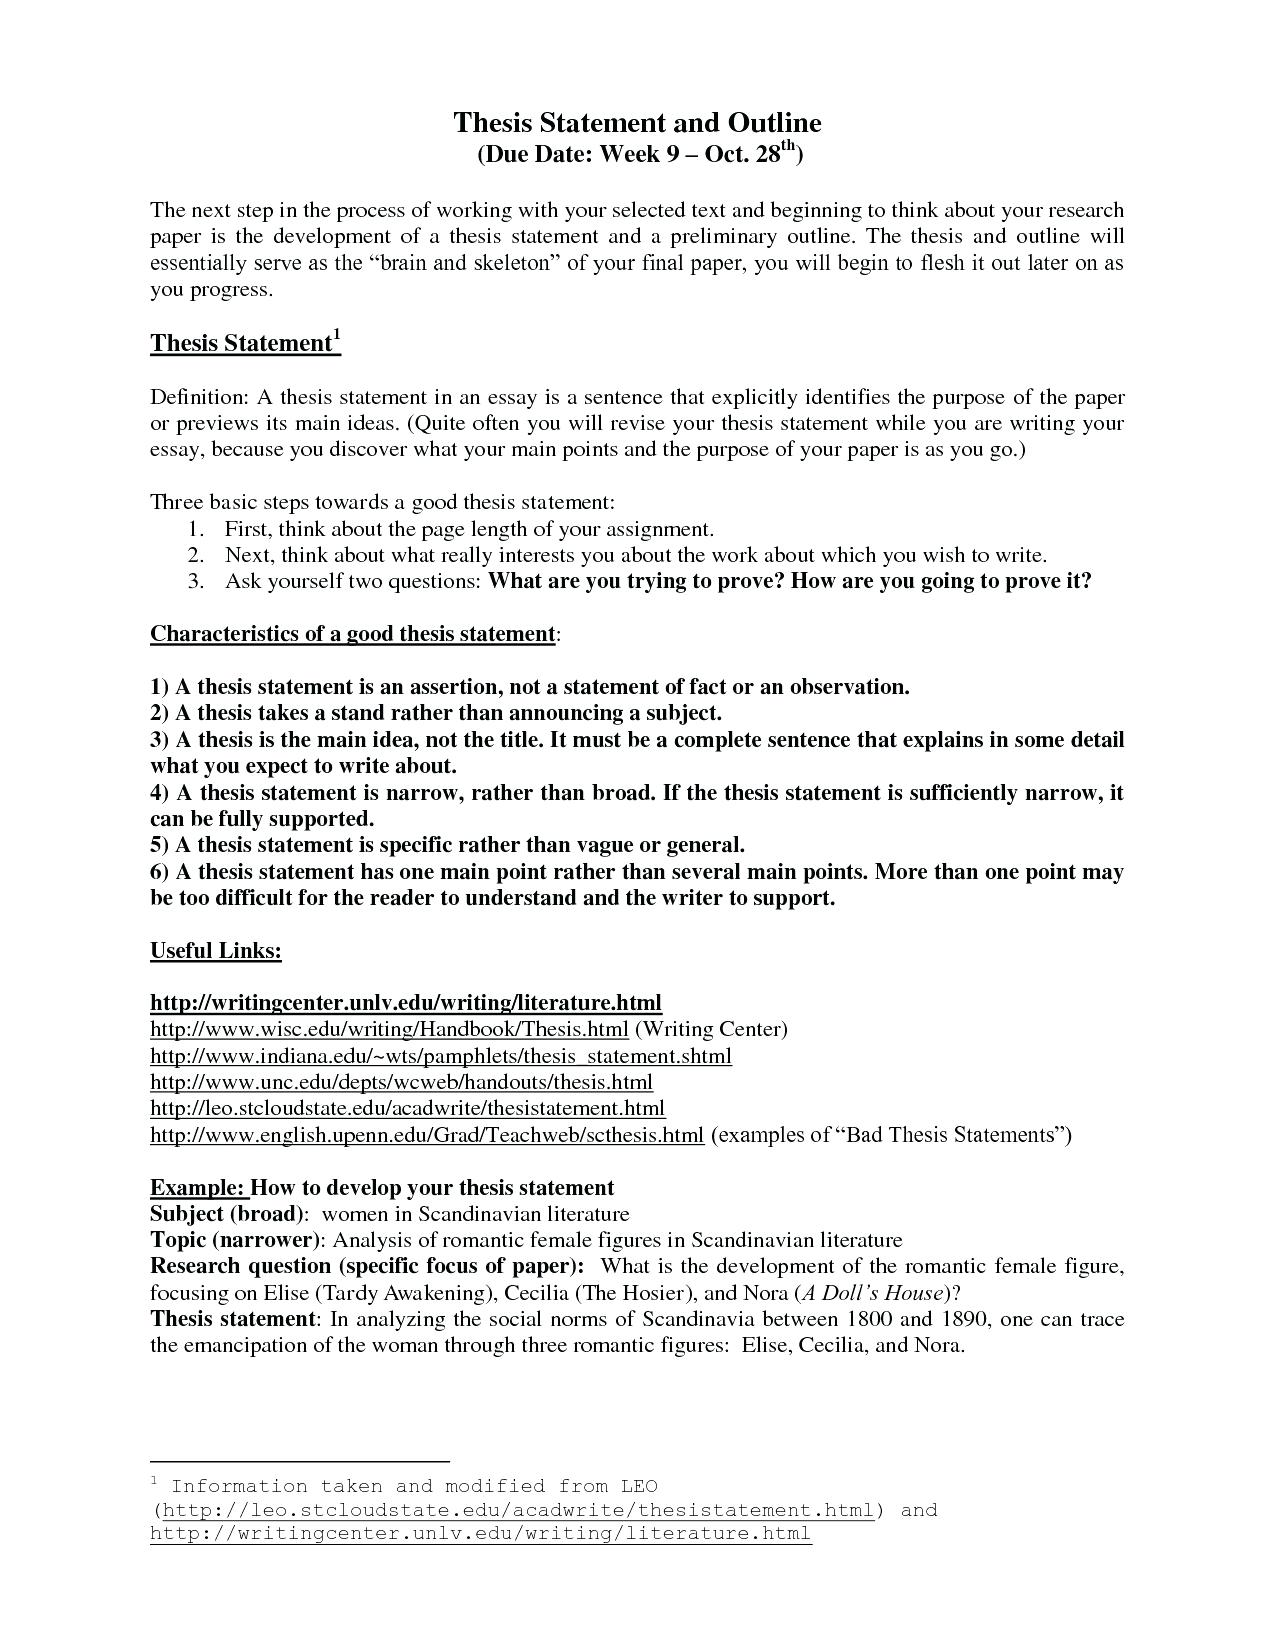 004 Essay Example Apa Template Paper Definition With Cheap Papers Style Running Head Write My For Shocking Free Me Uk Online Full